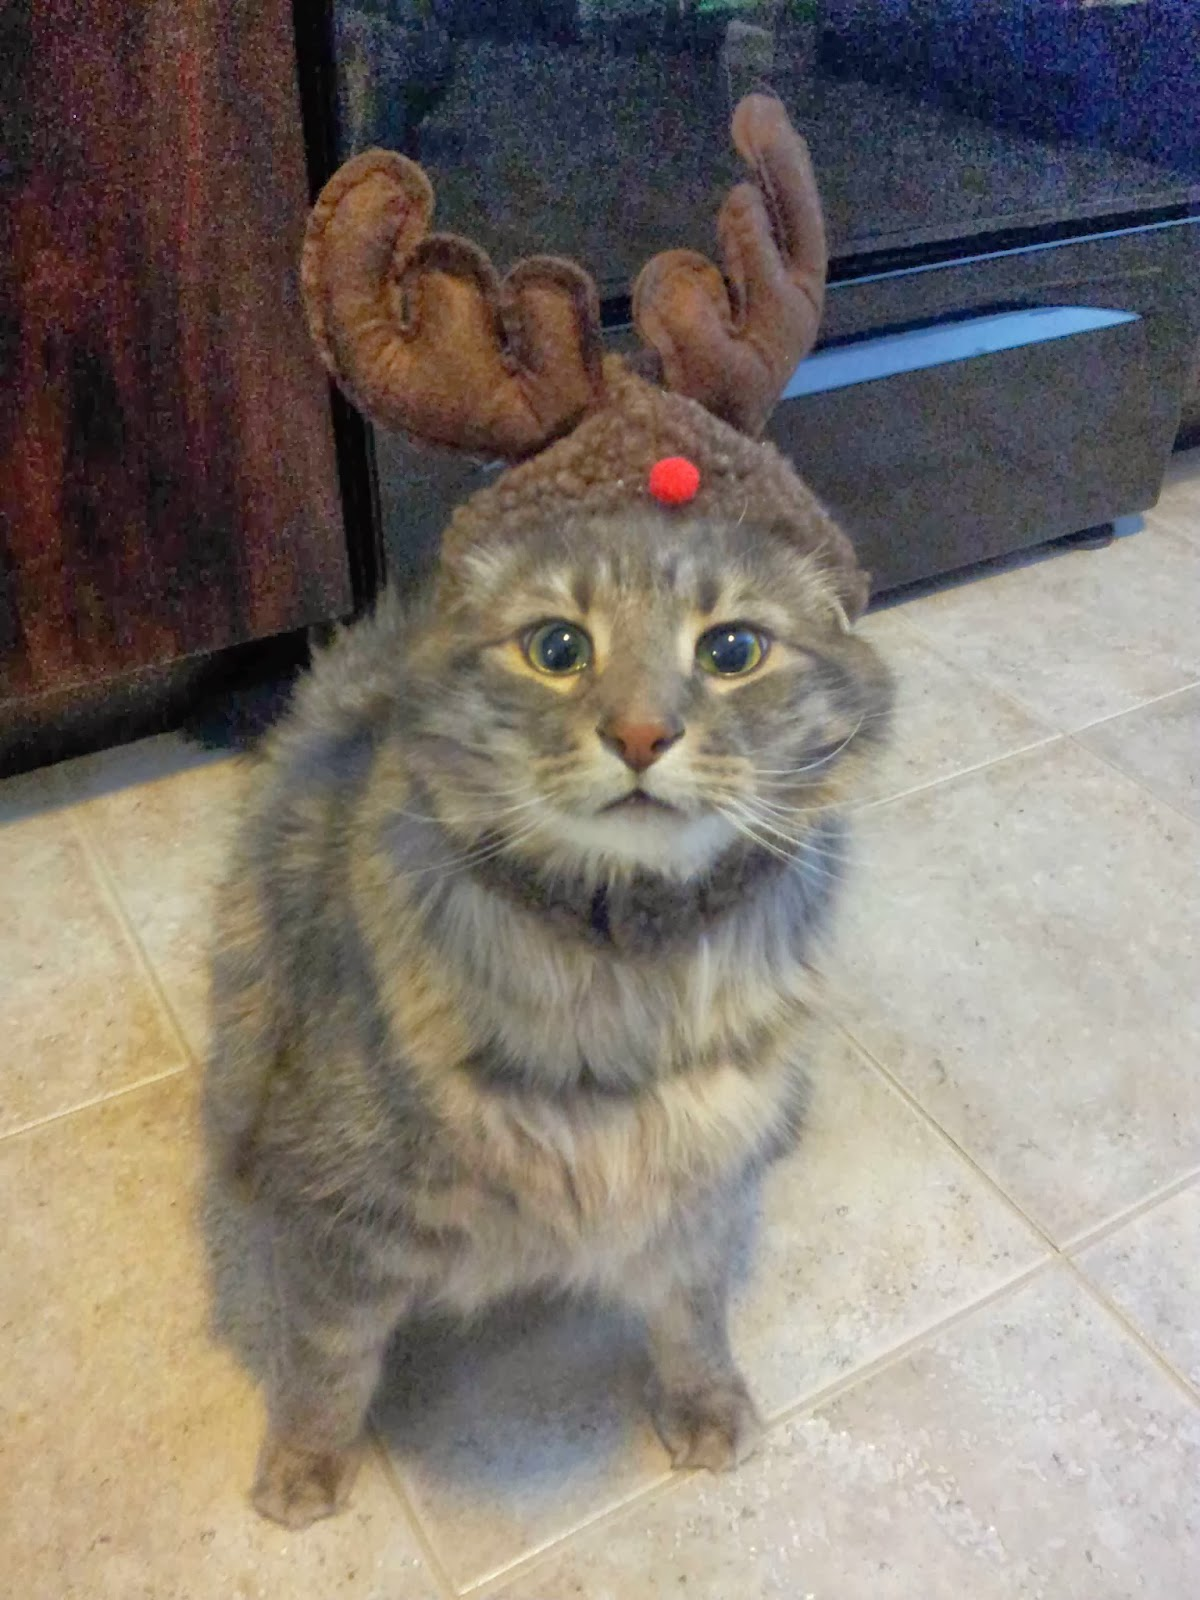 Funny cats - part 82 (40 pics + 10 gifs), cat photo, cat wears antler hat